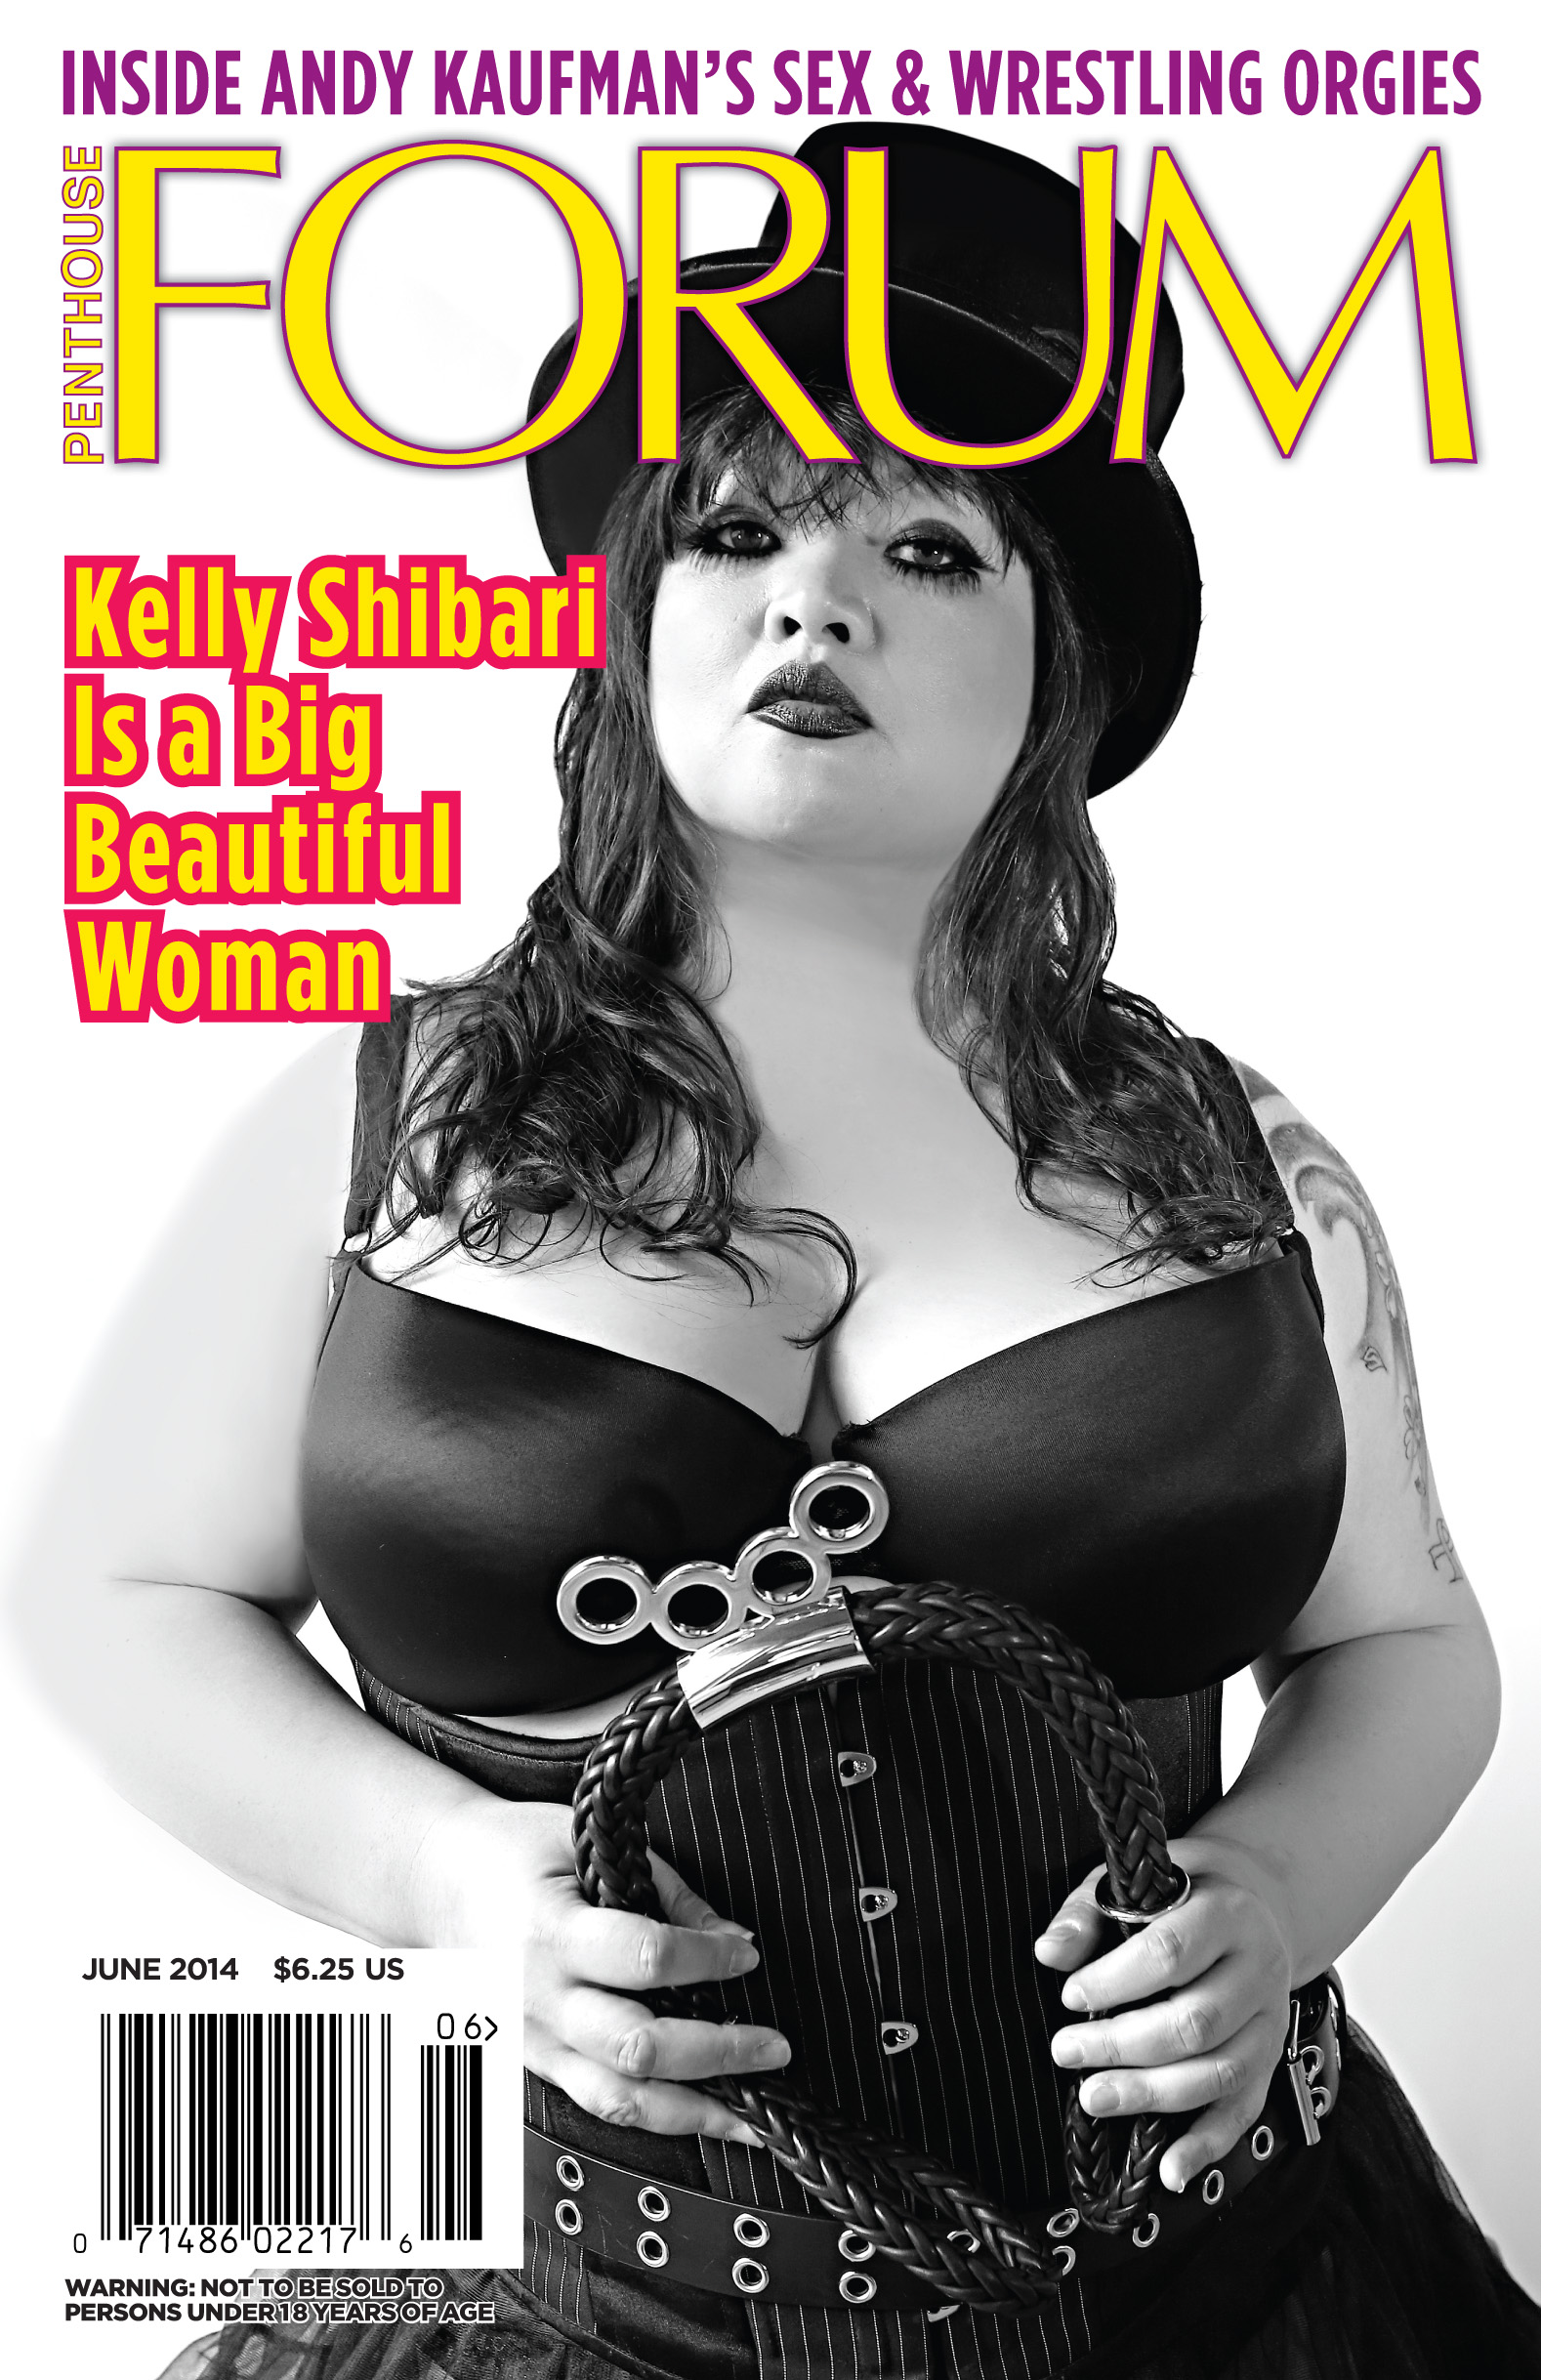 Kelly Shibari made history as the first Penthouse Magazine title cover girl